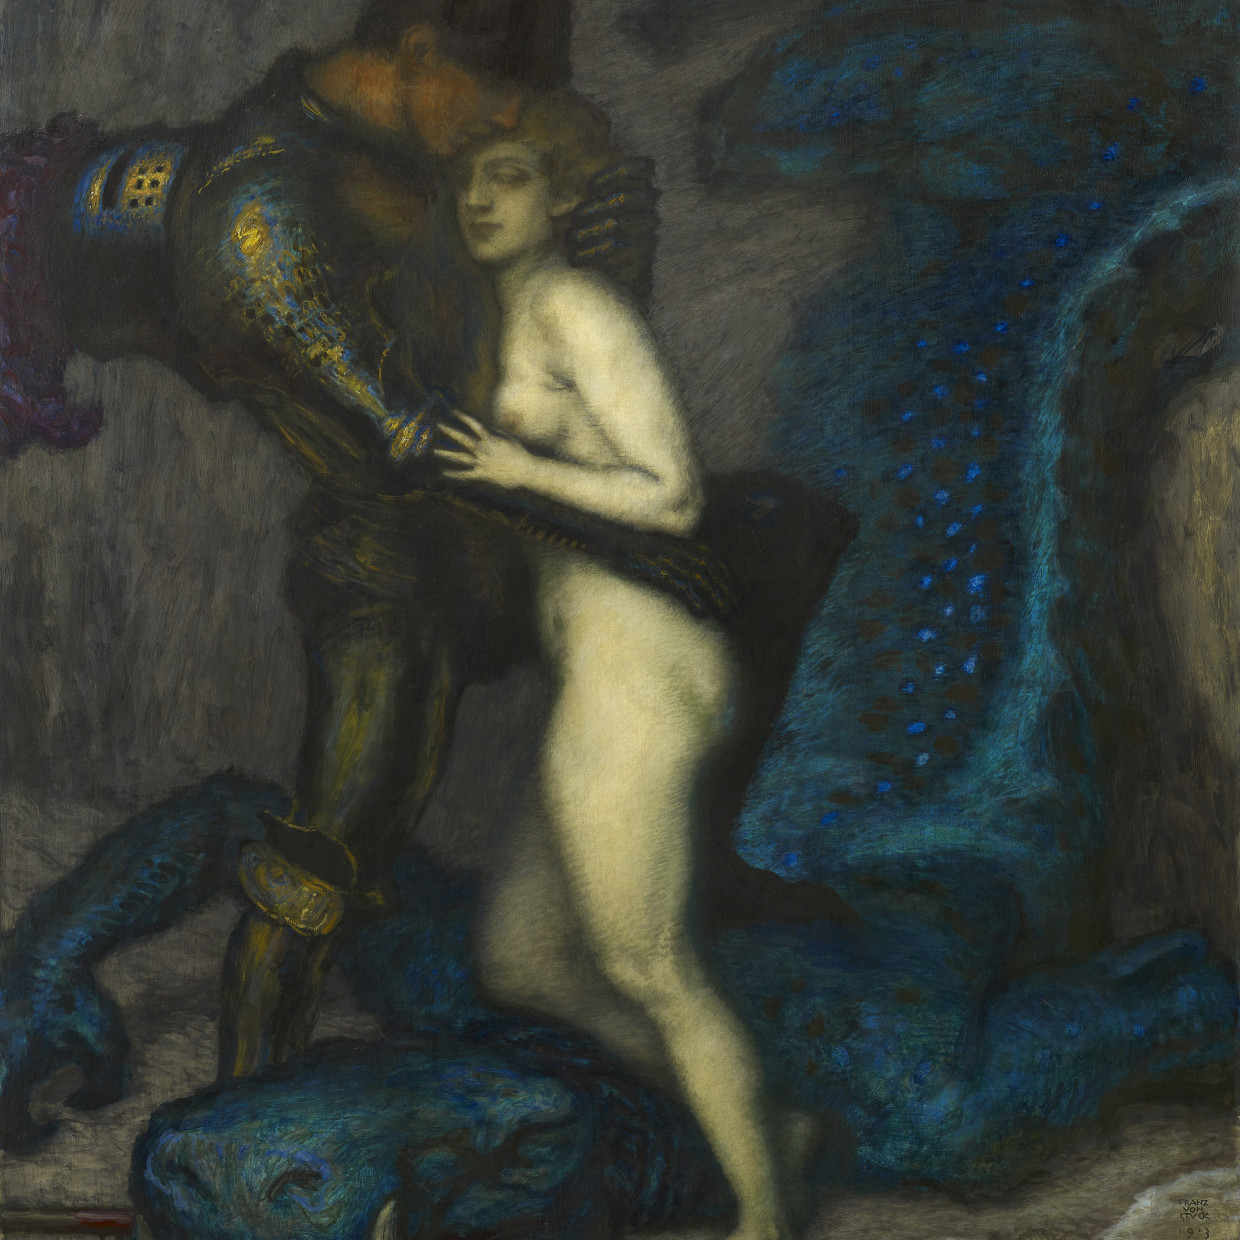 Franz Von Stuck, Der Drachentöter (The Dragon Slayer)